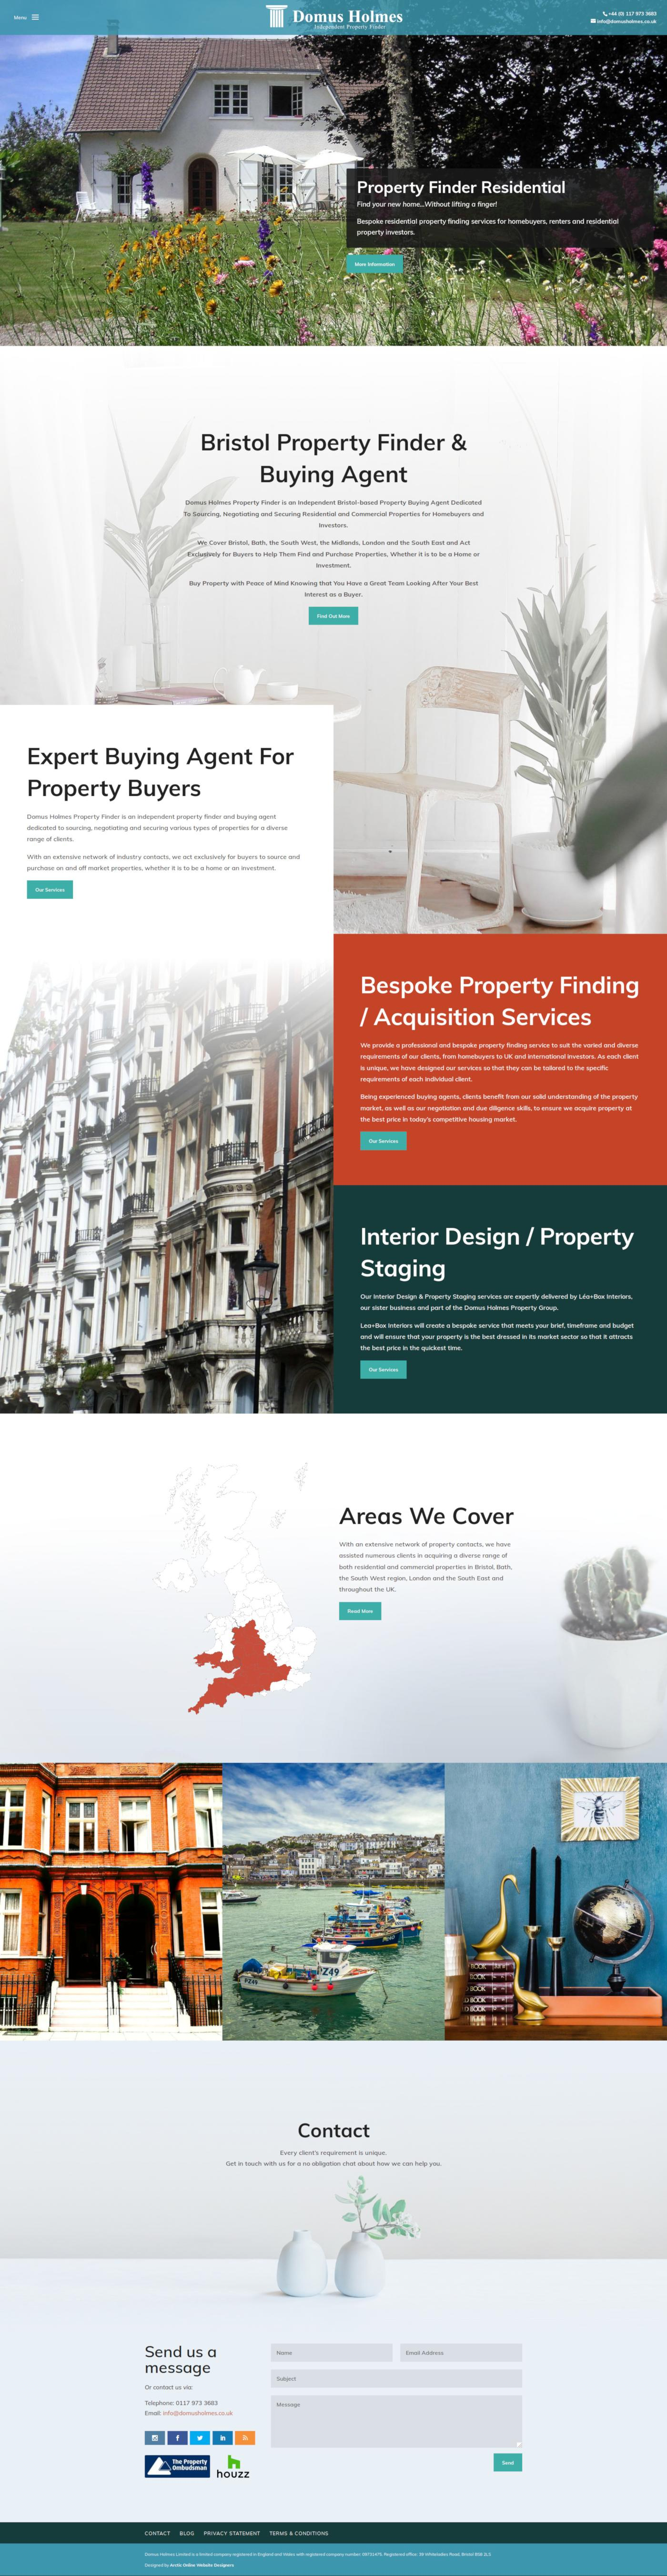 Home Page Screenshot of WordPress Website Design For Domus Holmes Property Finder